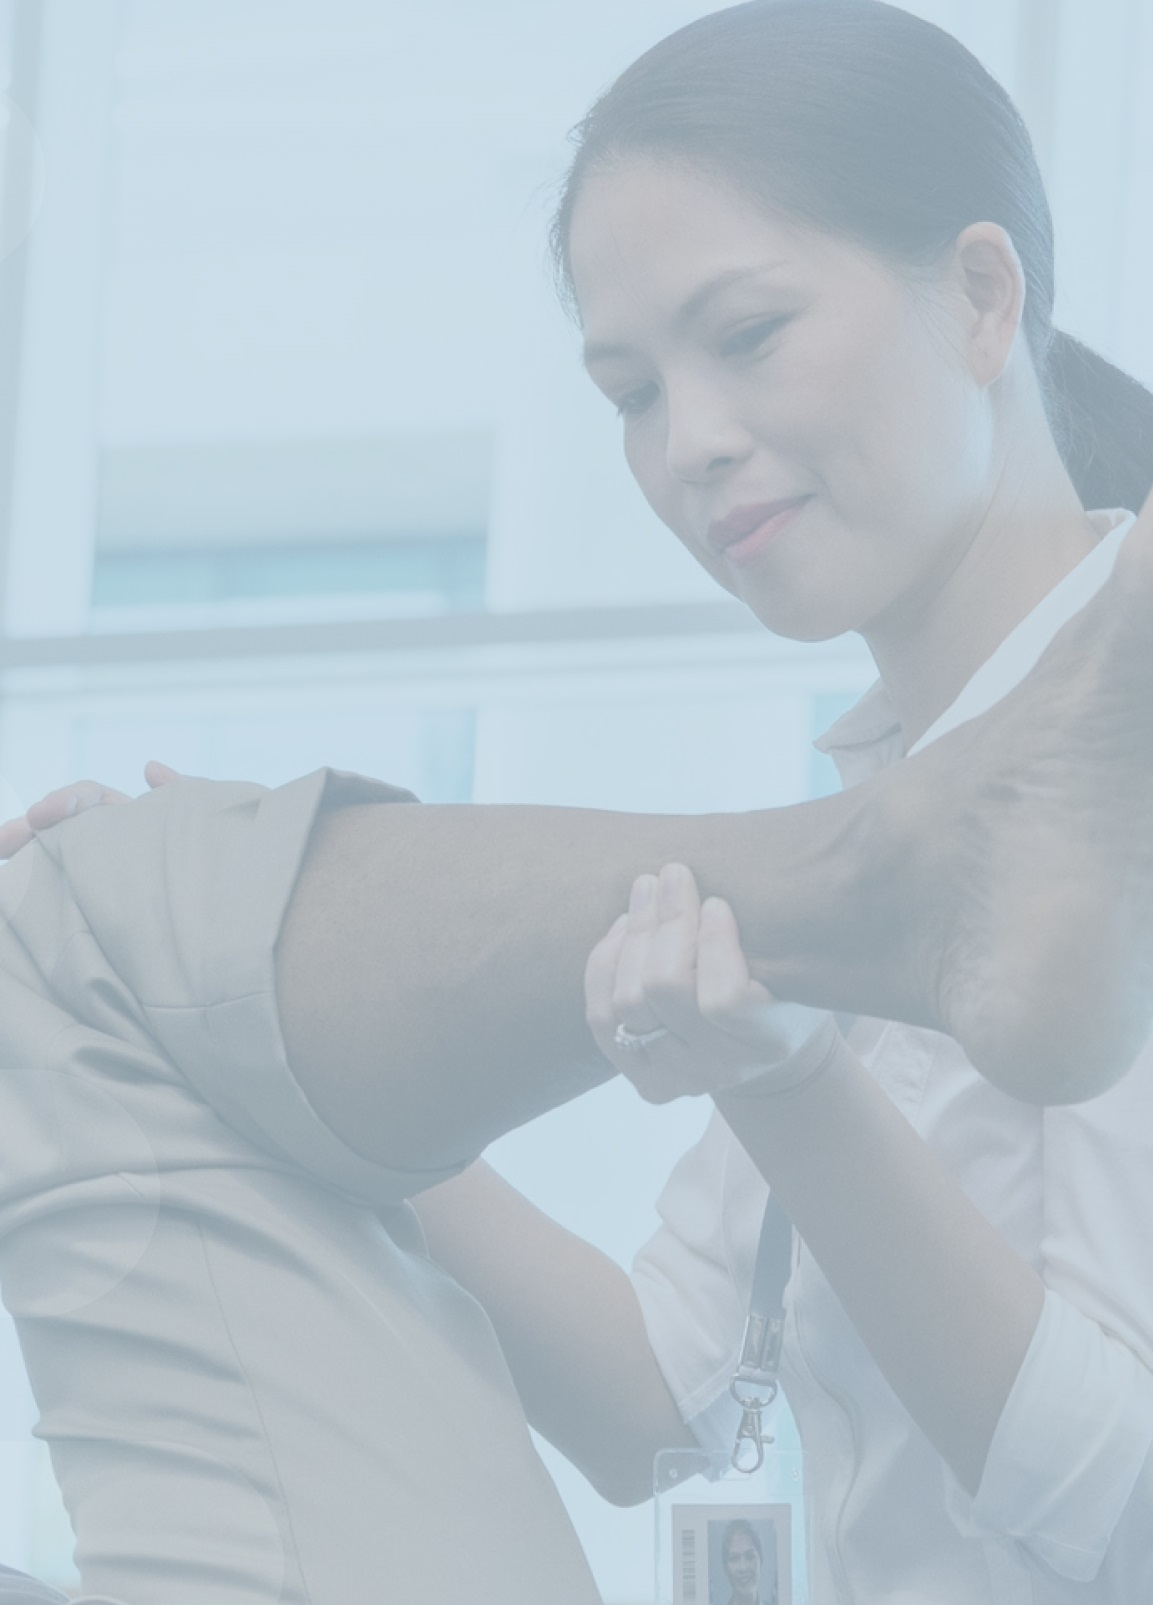 Chiropractor providing EHC chiropractic coverage care to patient